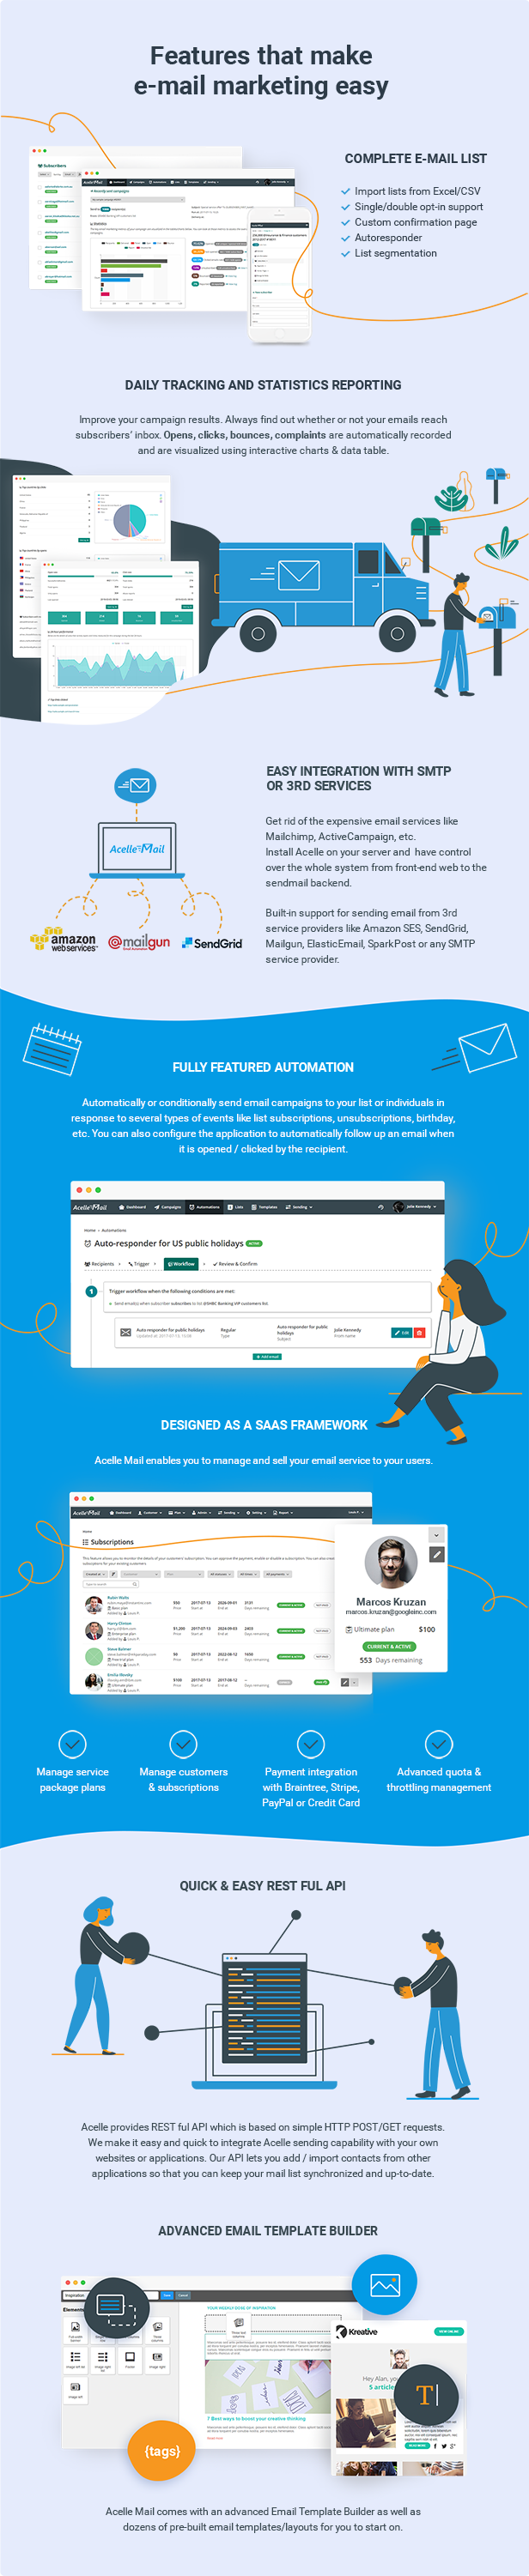 Acelle - Email Marketing Web Application - 7